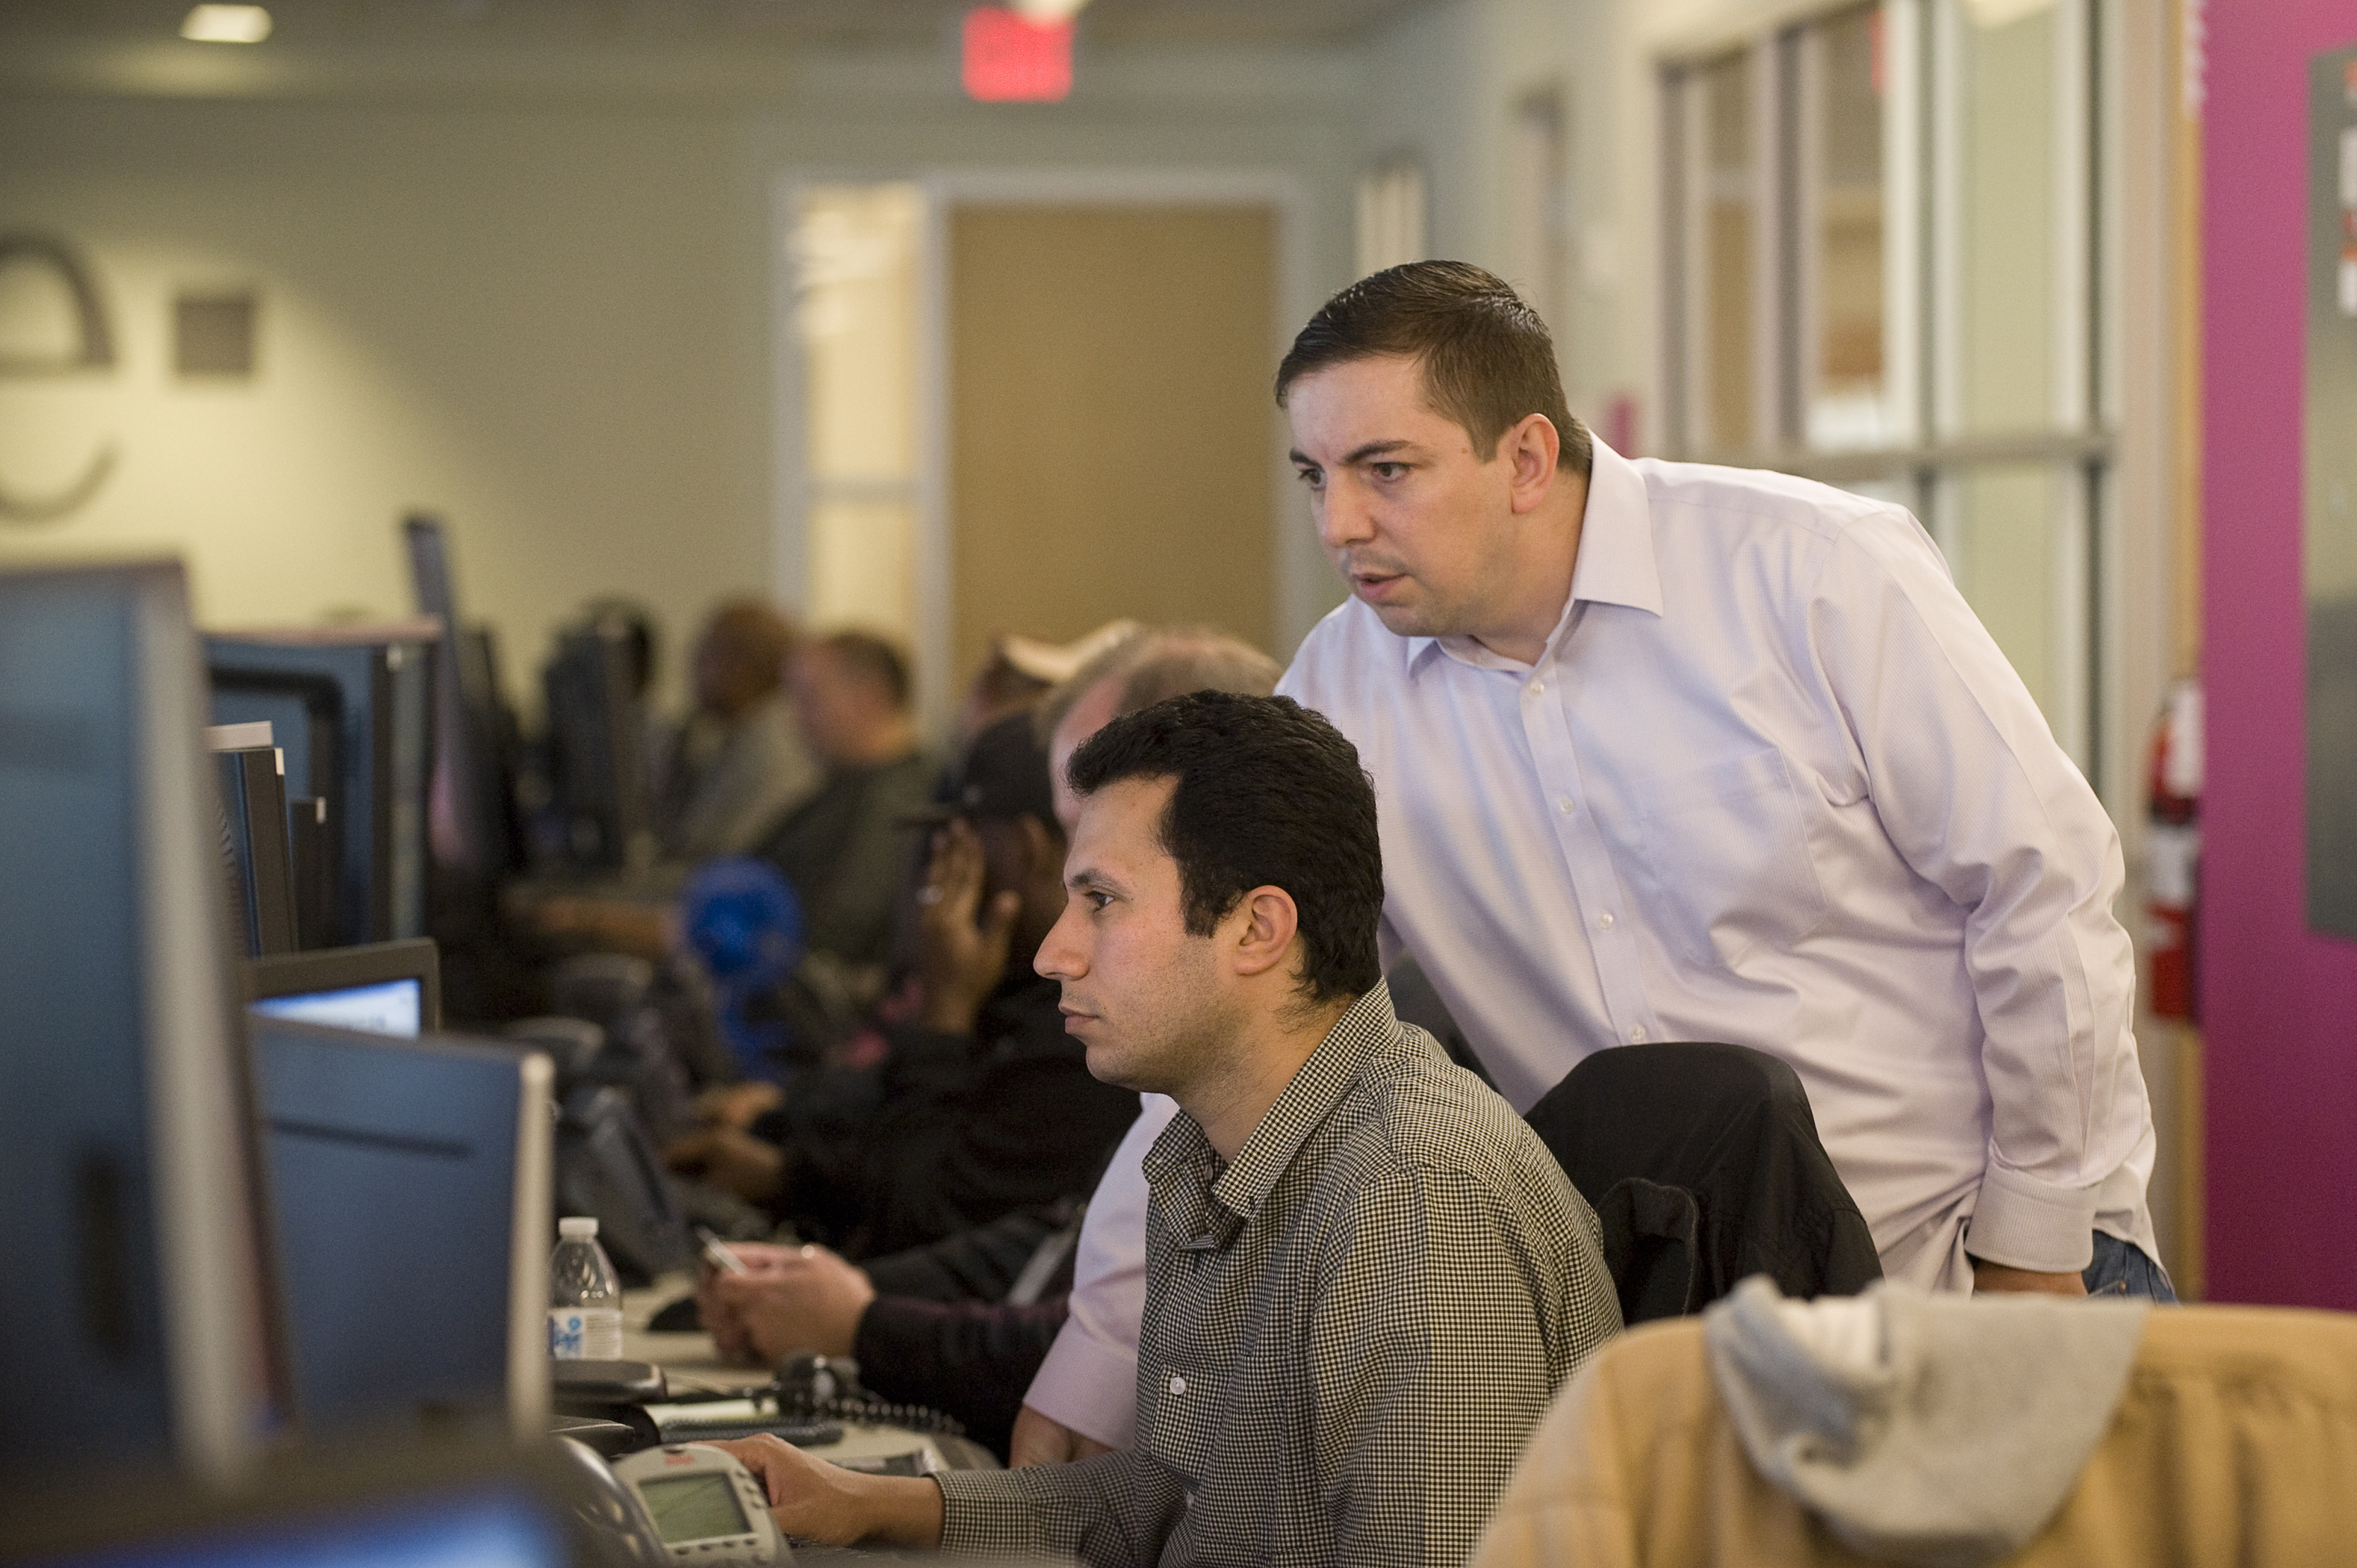 Inside a T-Mobile Network Operation Center: T-Mobile engineers work around the clock at one of the Network Operation Centers (NOCs) to monitor and manage network traffic. (Photo: Business Wire)